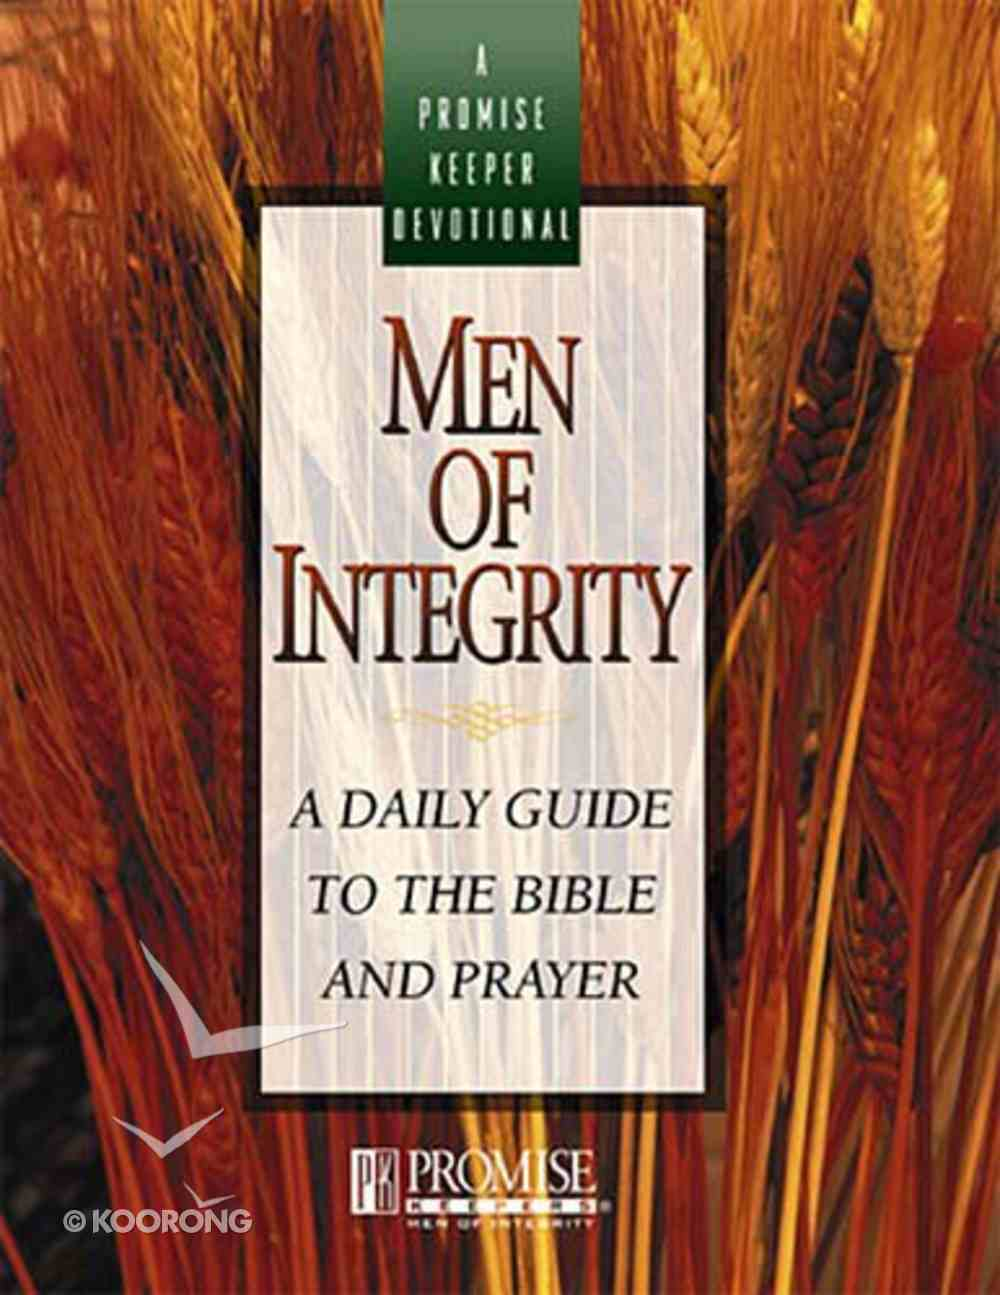 Promise Keepers Devotional: Men of Integrity Paperback